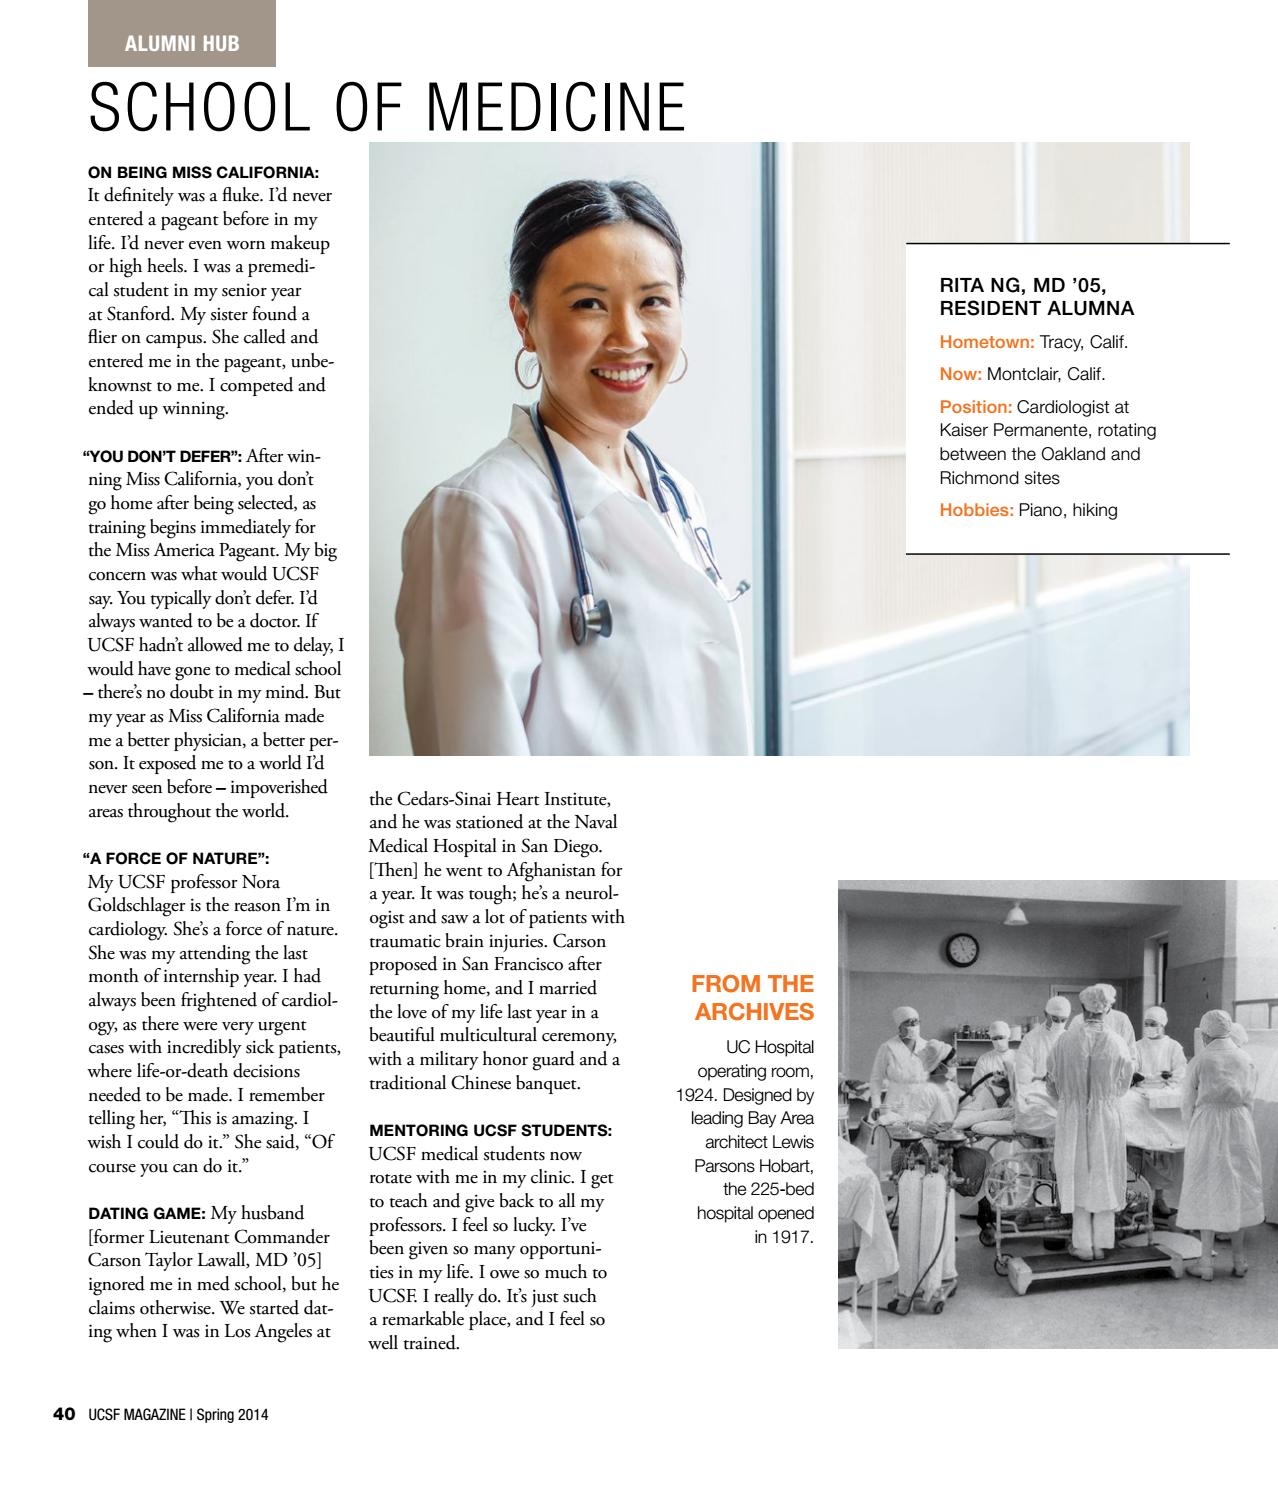 UCSF Magazine Spring 2014 by UCSF Magazine - issuu